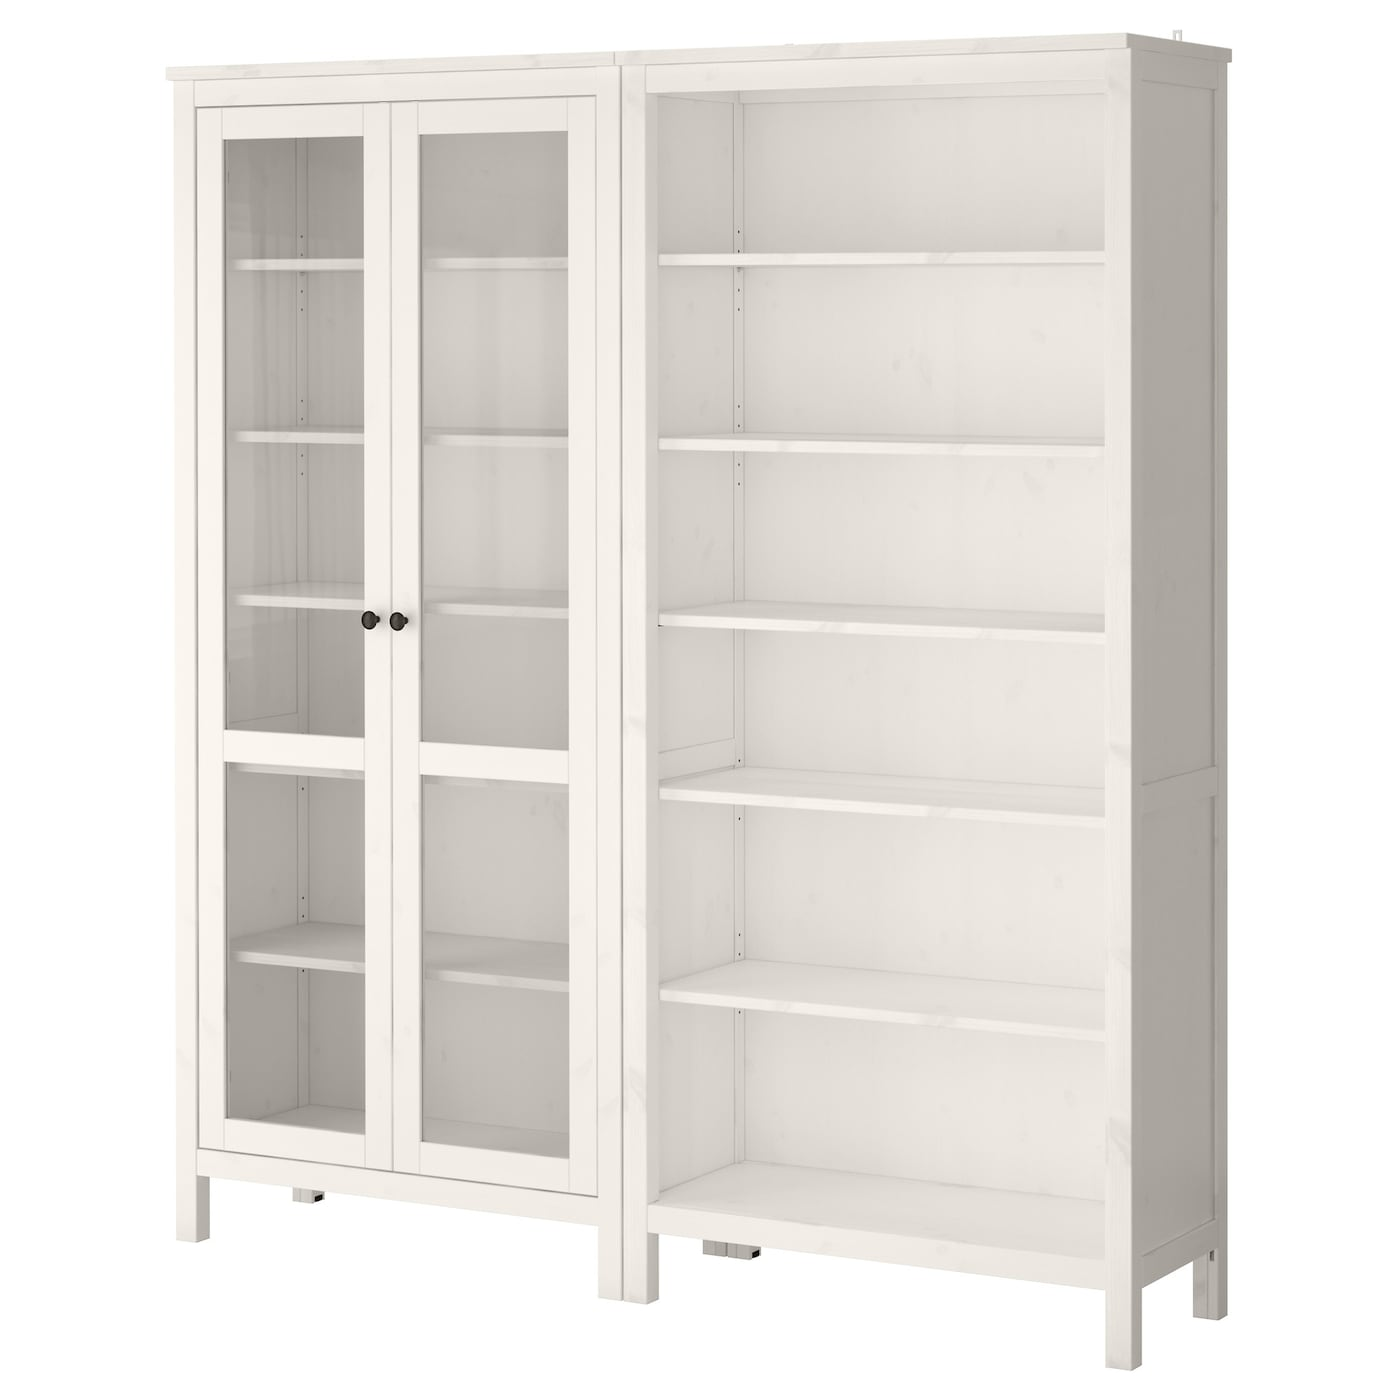 kitchen cabinets 30cm deep bookcases white bookcases ikea 19893